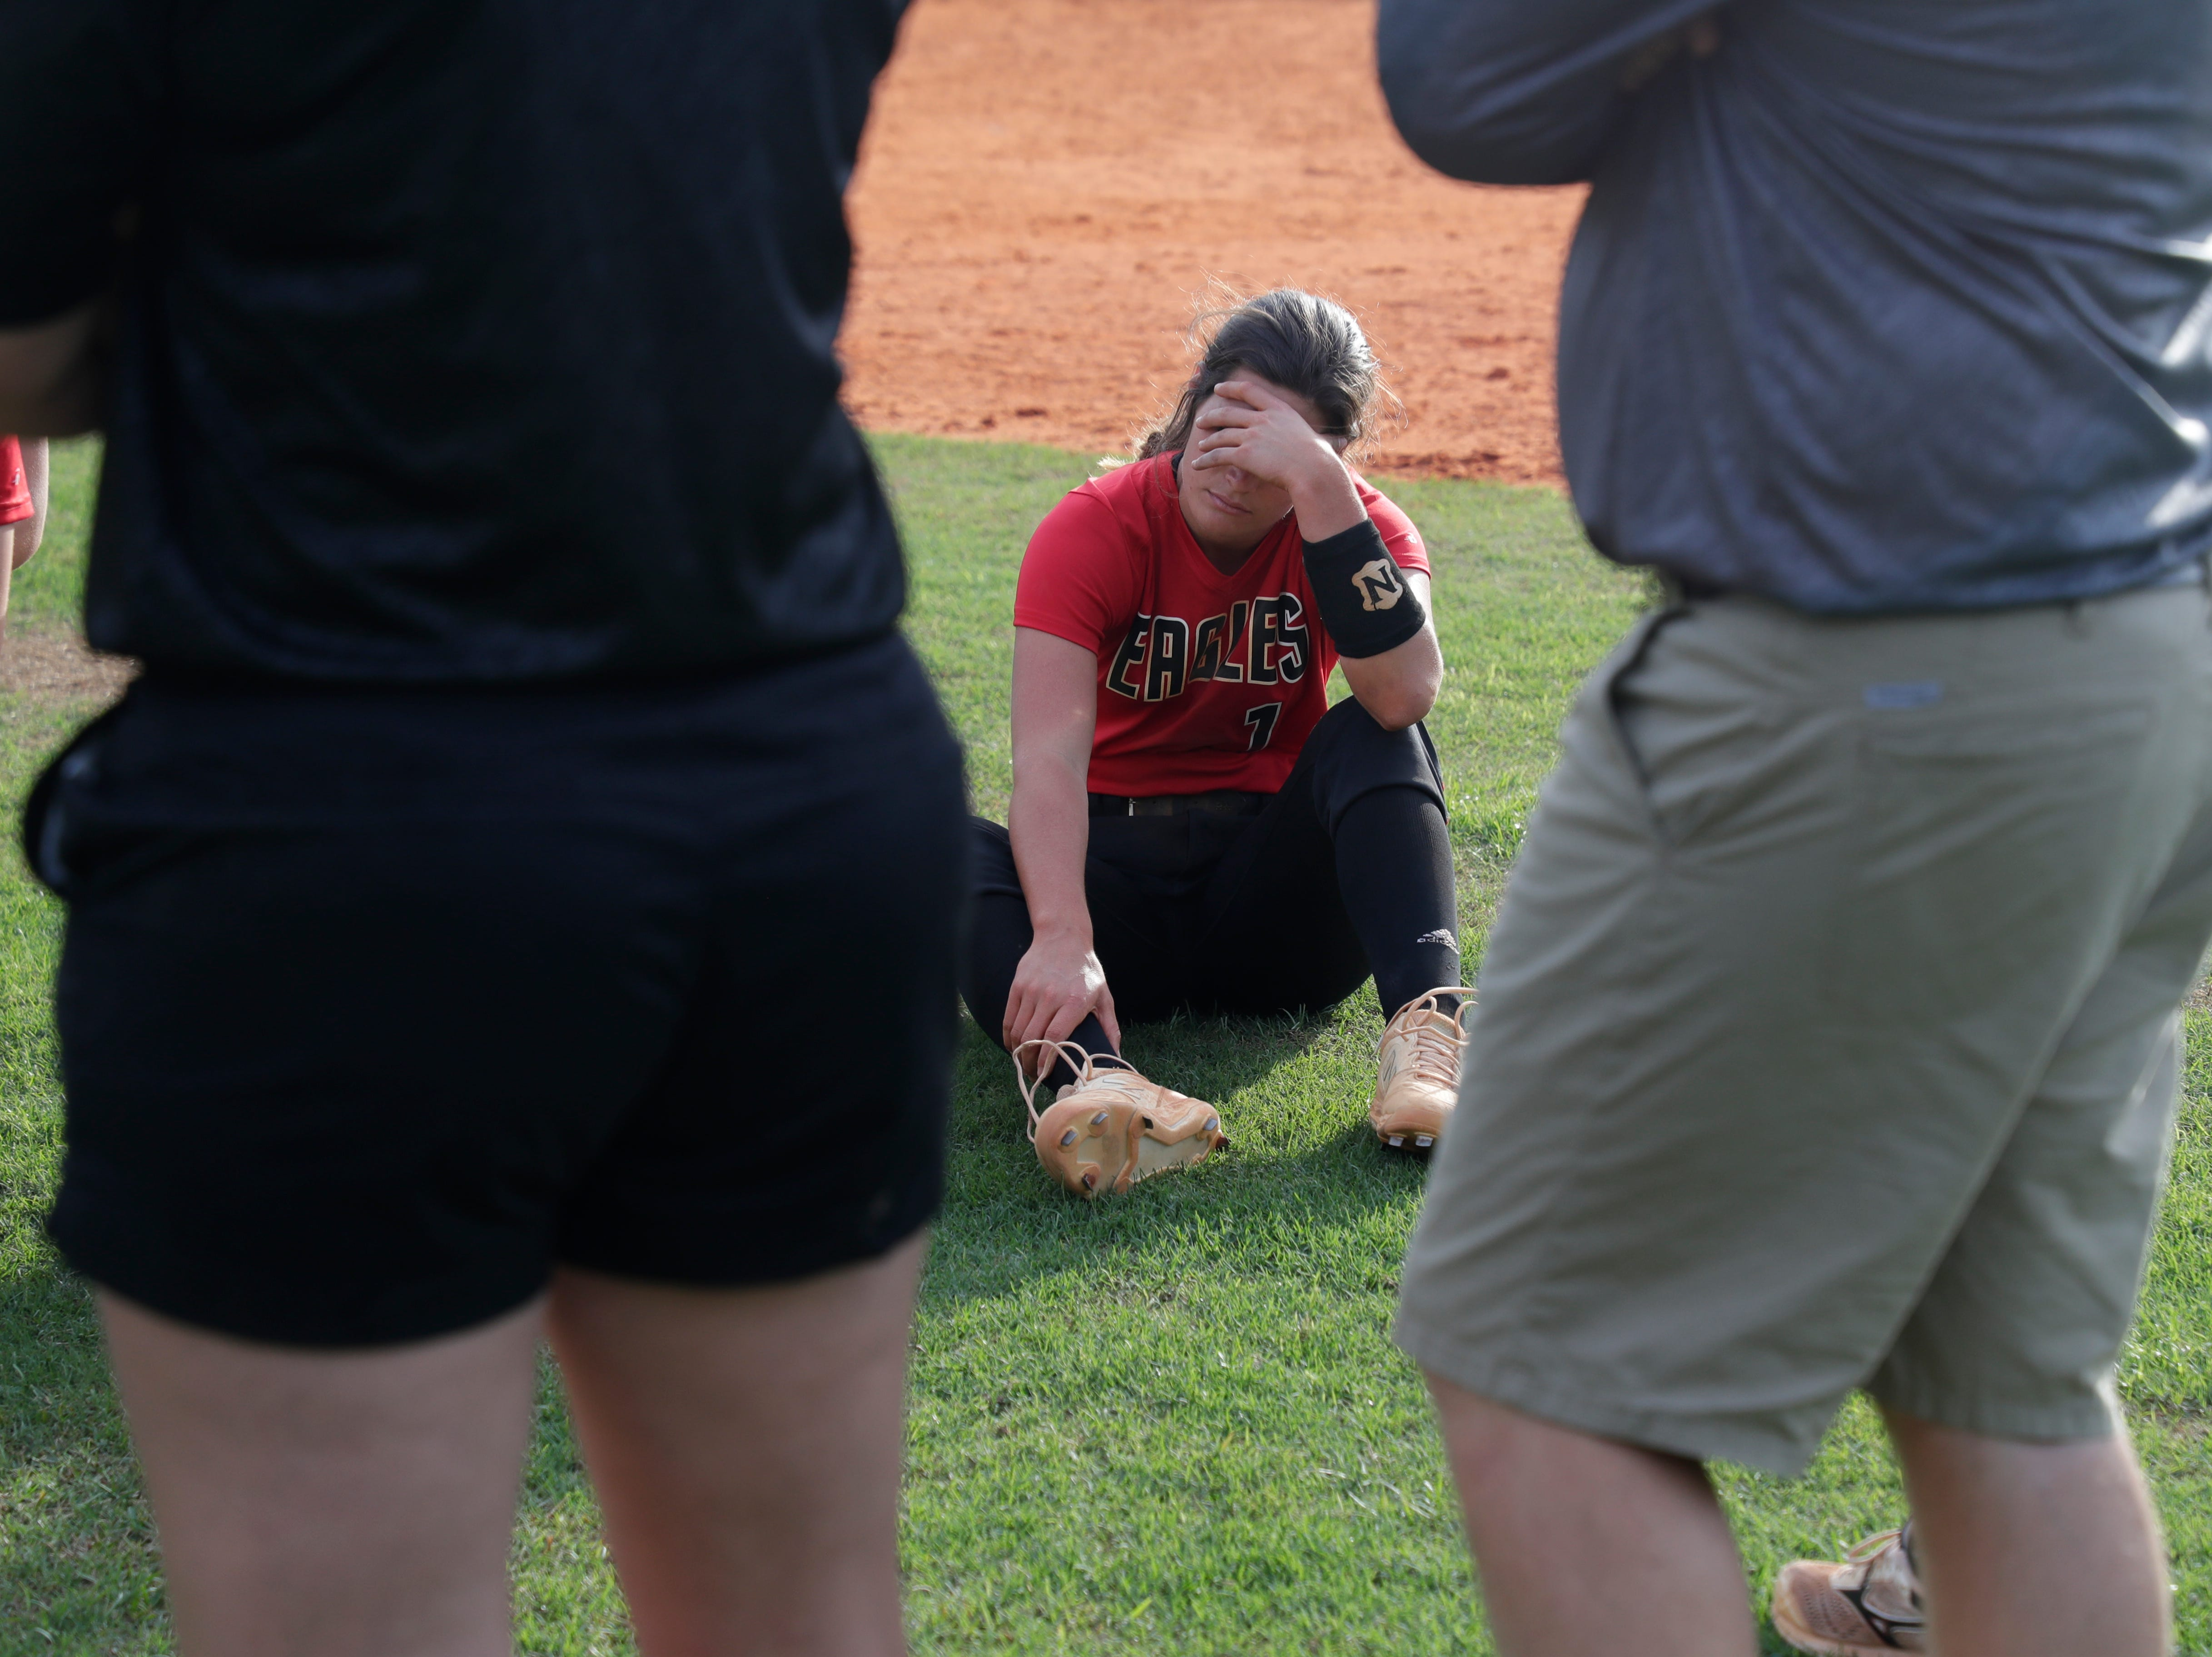 North Florida Christian's Chloe Culp covers her face as the team huddles after losing the 1-3A regional final game 16 to 11 to University Christian at NFC Tuesday, May 14, 2019.